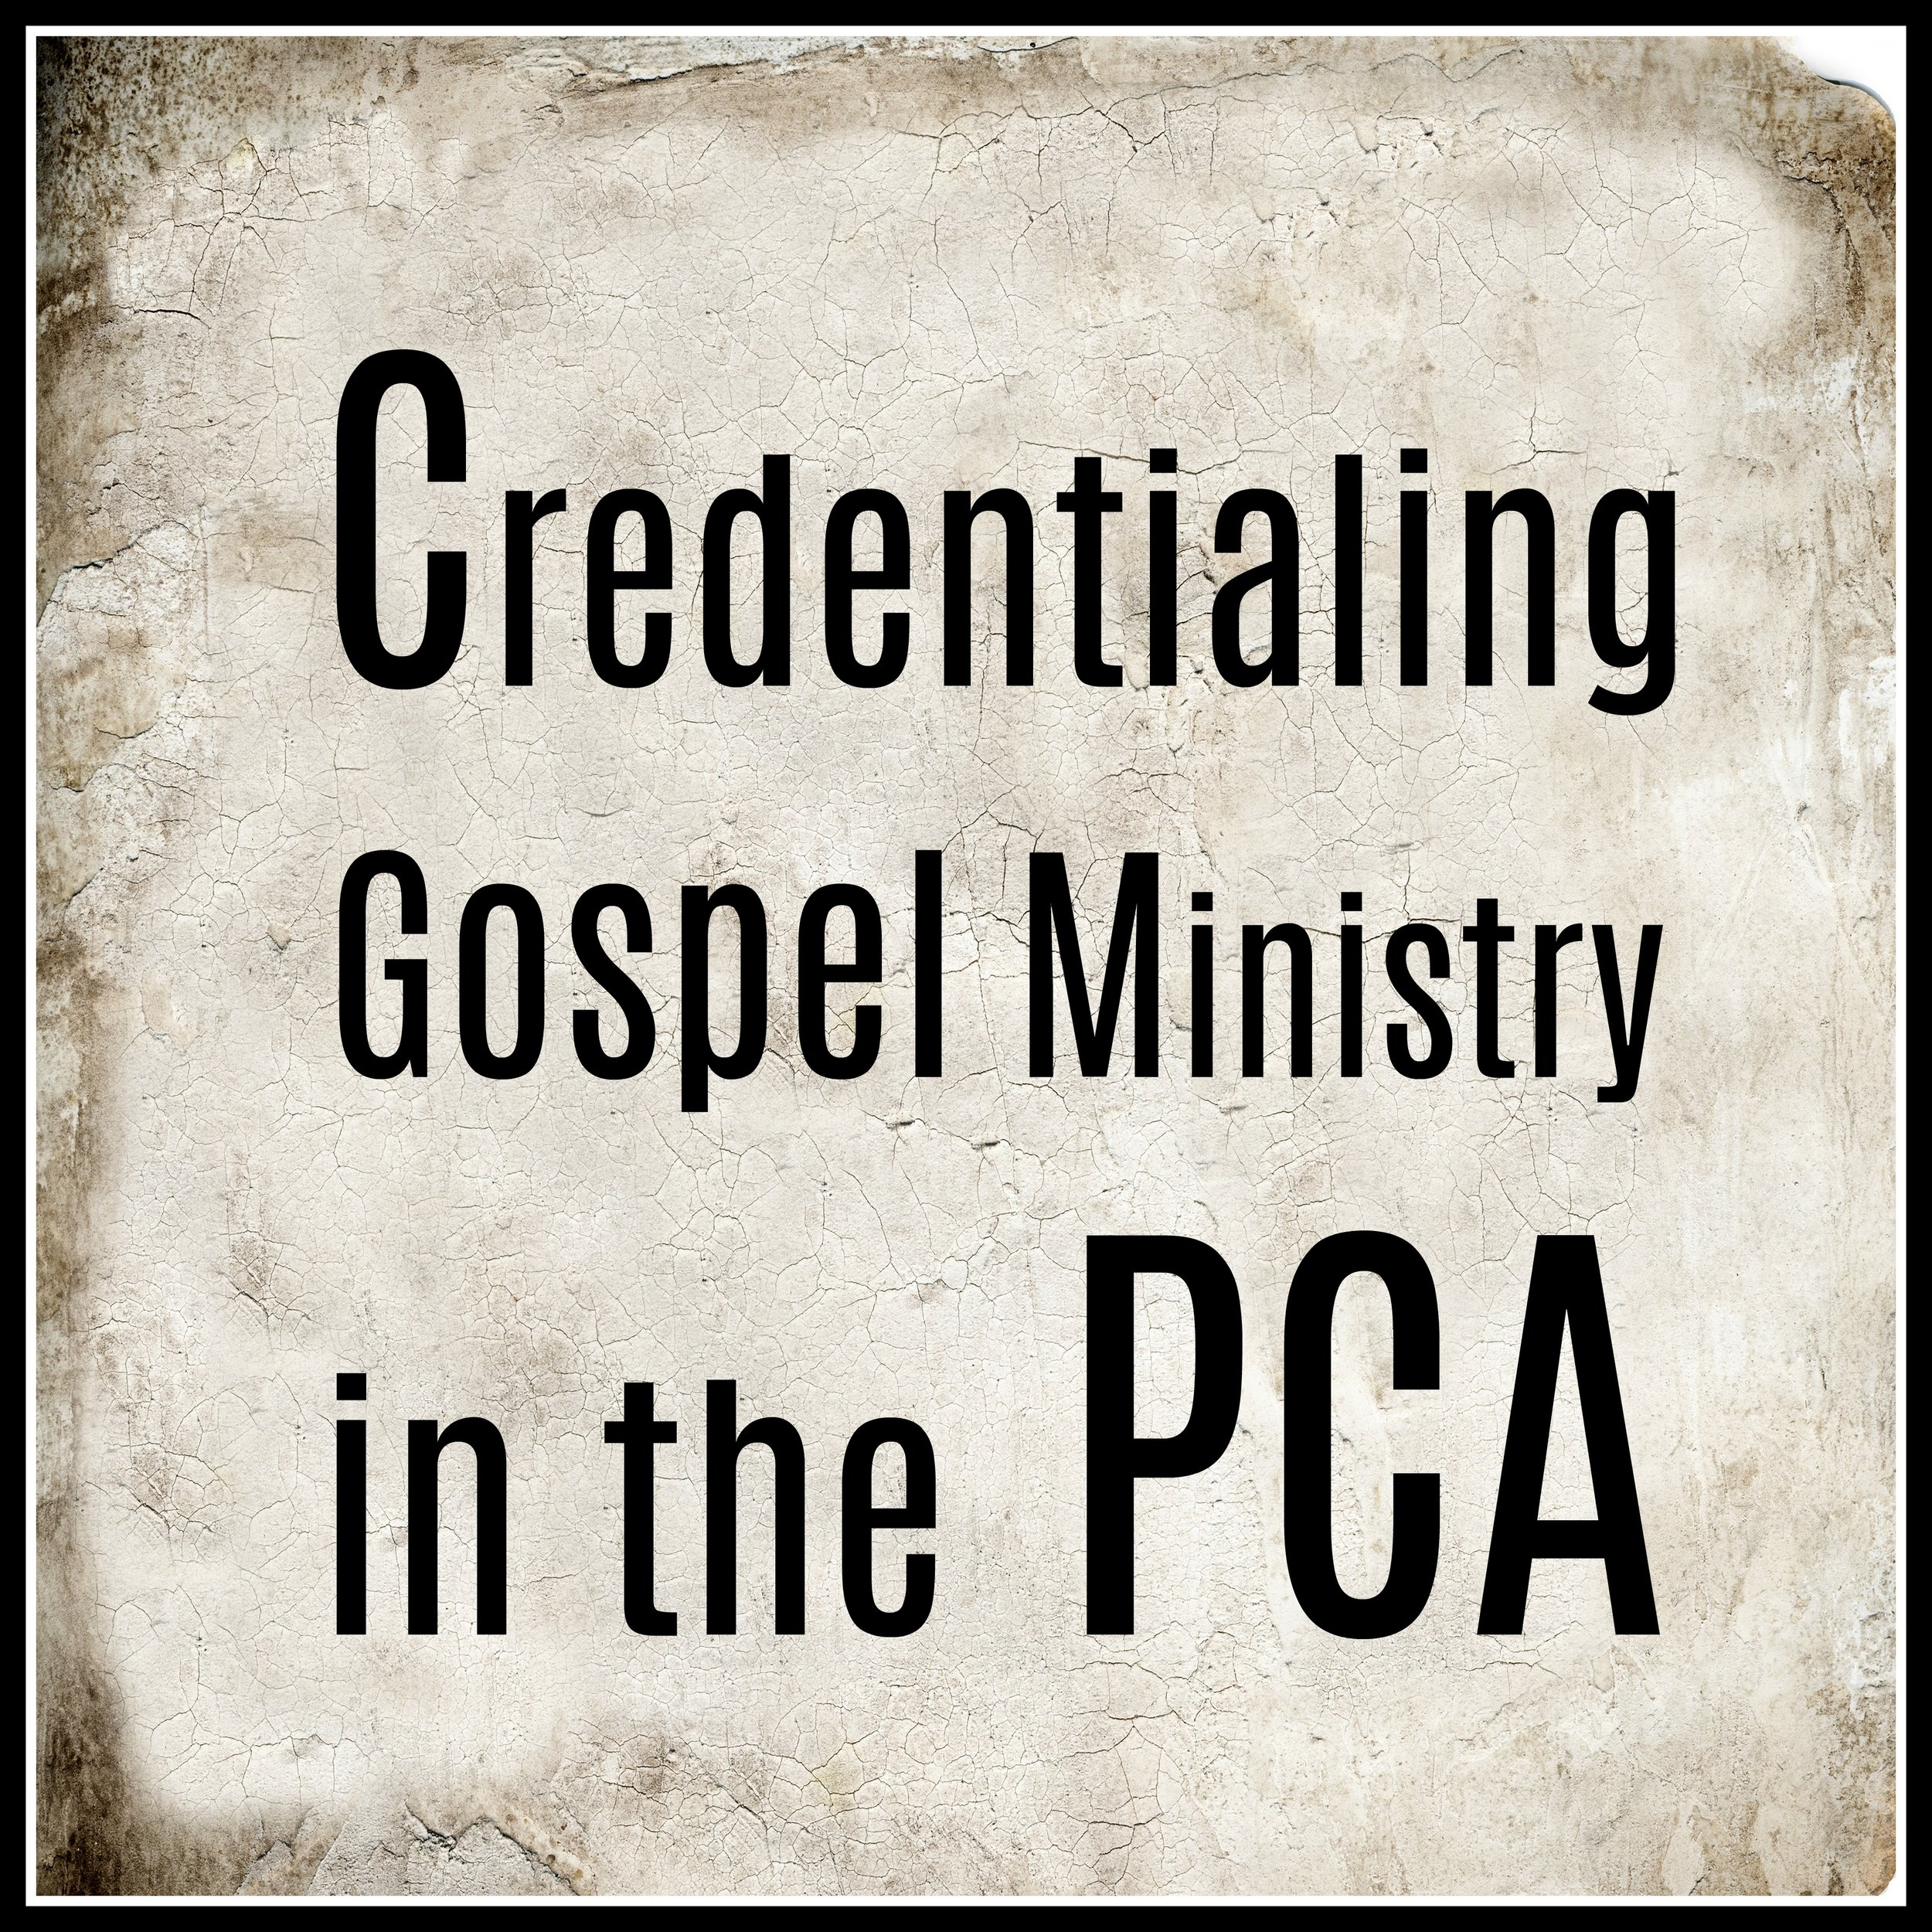 Credentialing Gospel Ministry in the PCA.jpg